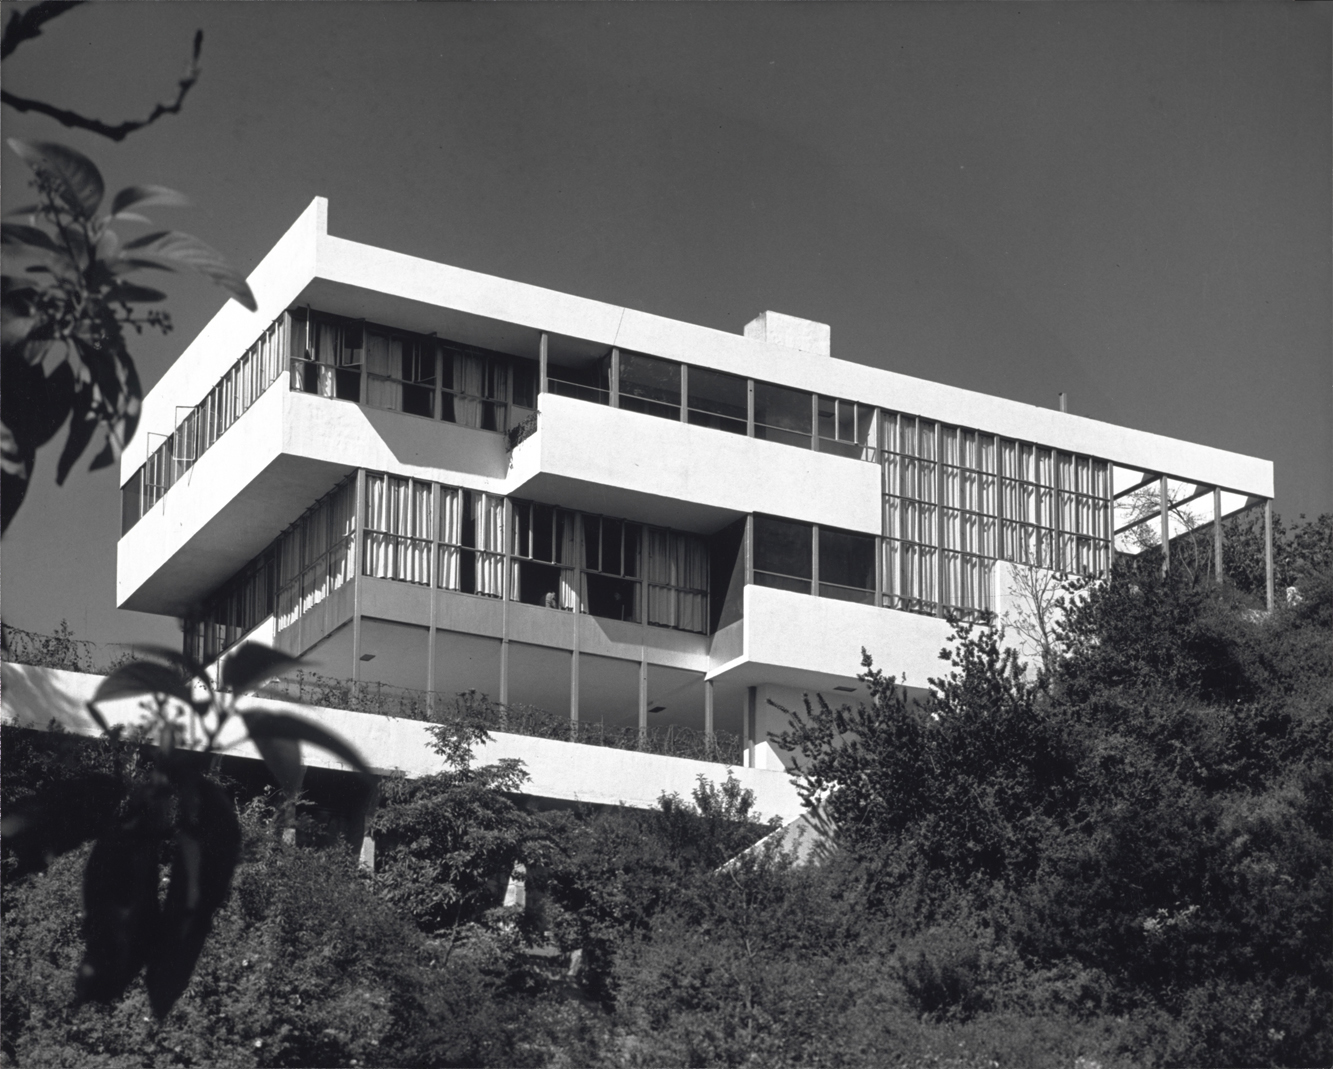 Completed in 1929, Neutra's Lovell Health house was the first steel-frame residence in the U.S., and was built using prefab elements (the home's framing went up in two days). Shulman shot the home, which Neutra included in the 1932 Museum of Modern Art Mo